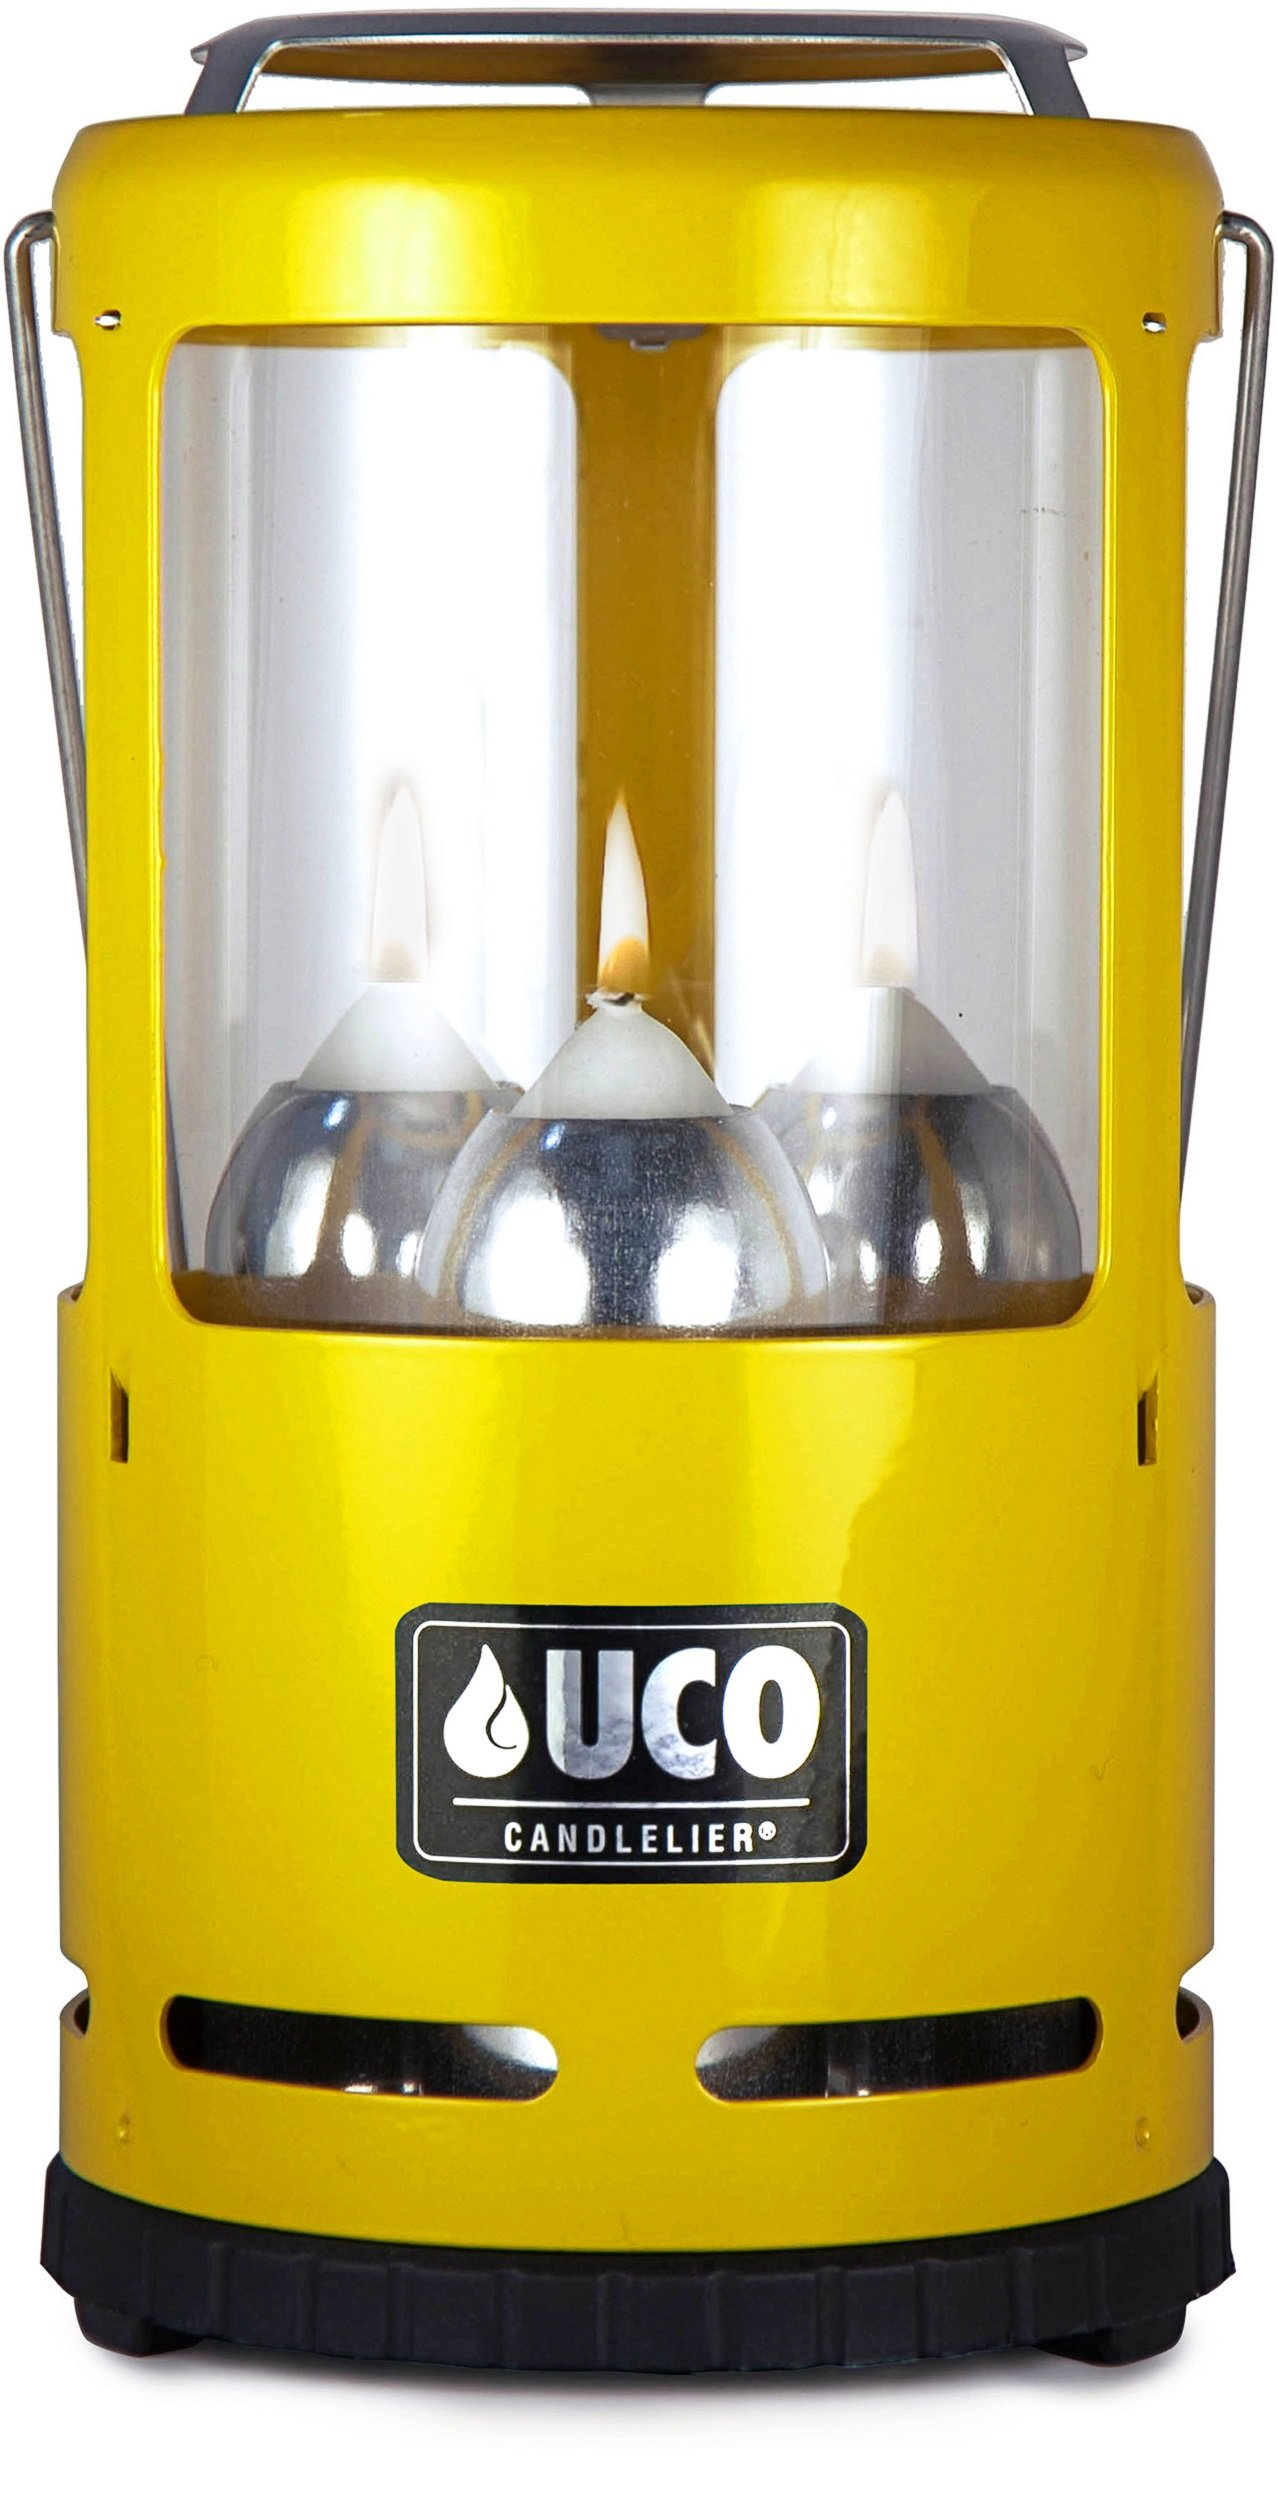 UCO Candlelier Deluxe Candle Lantern, Yellow